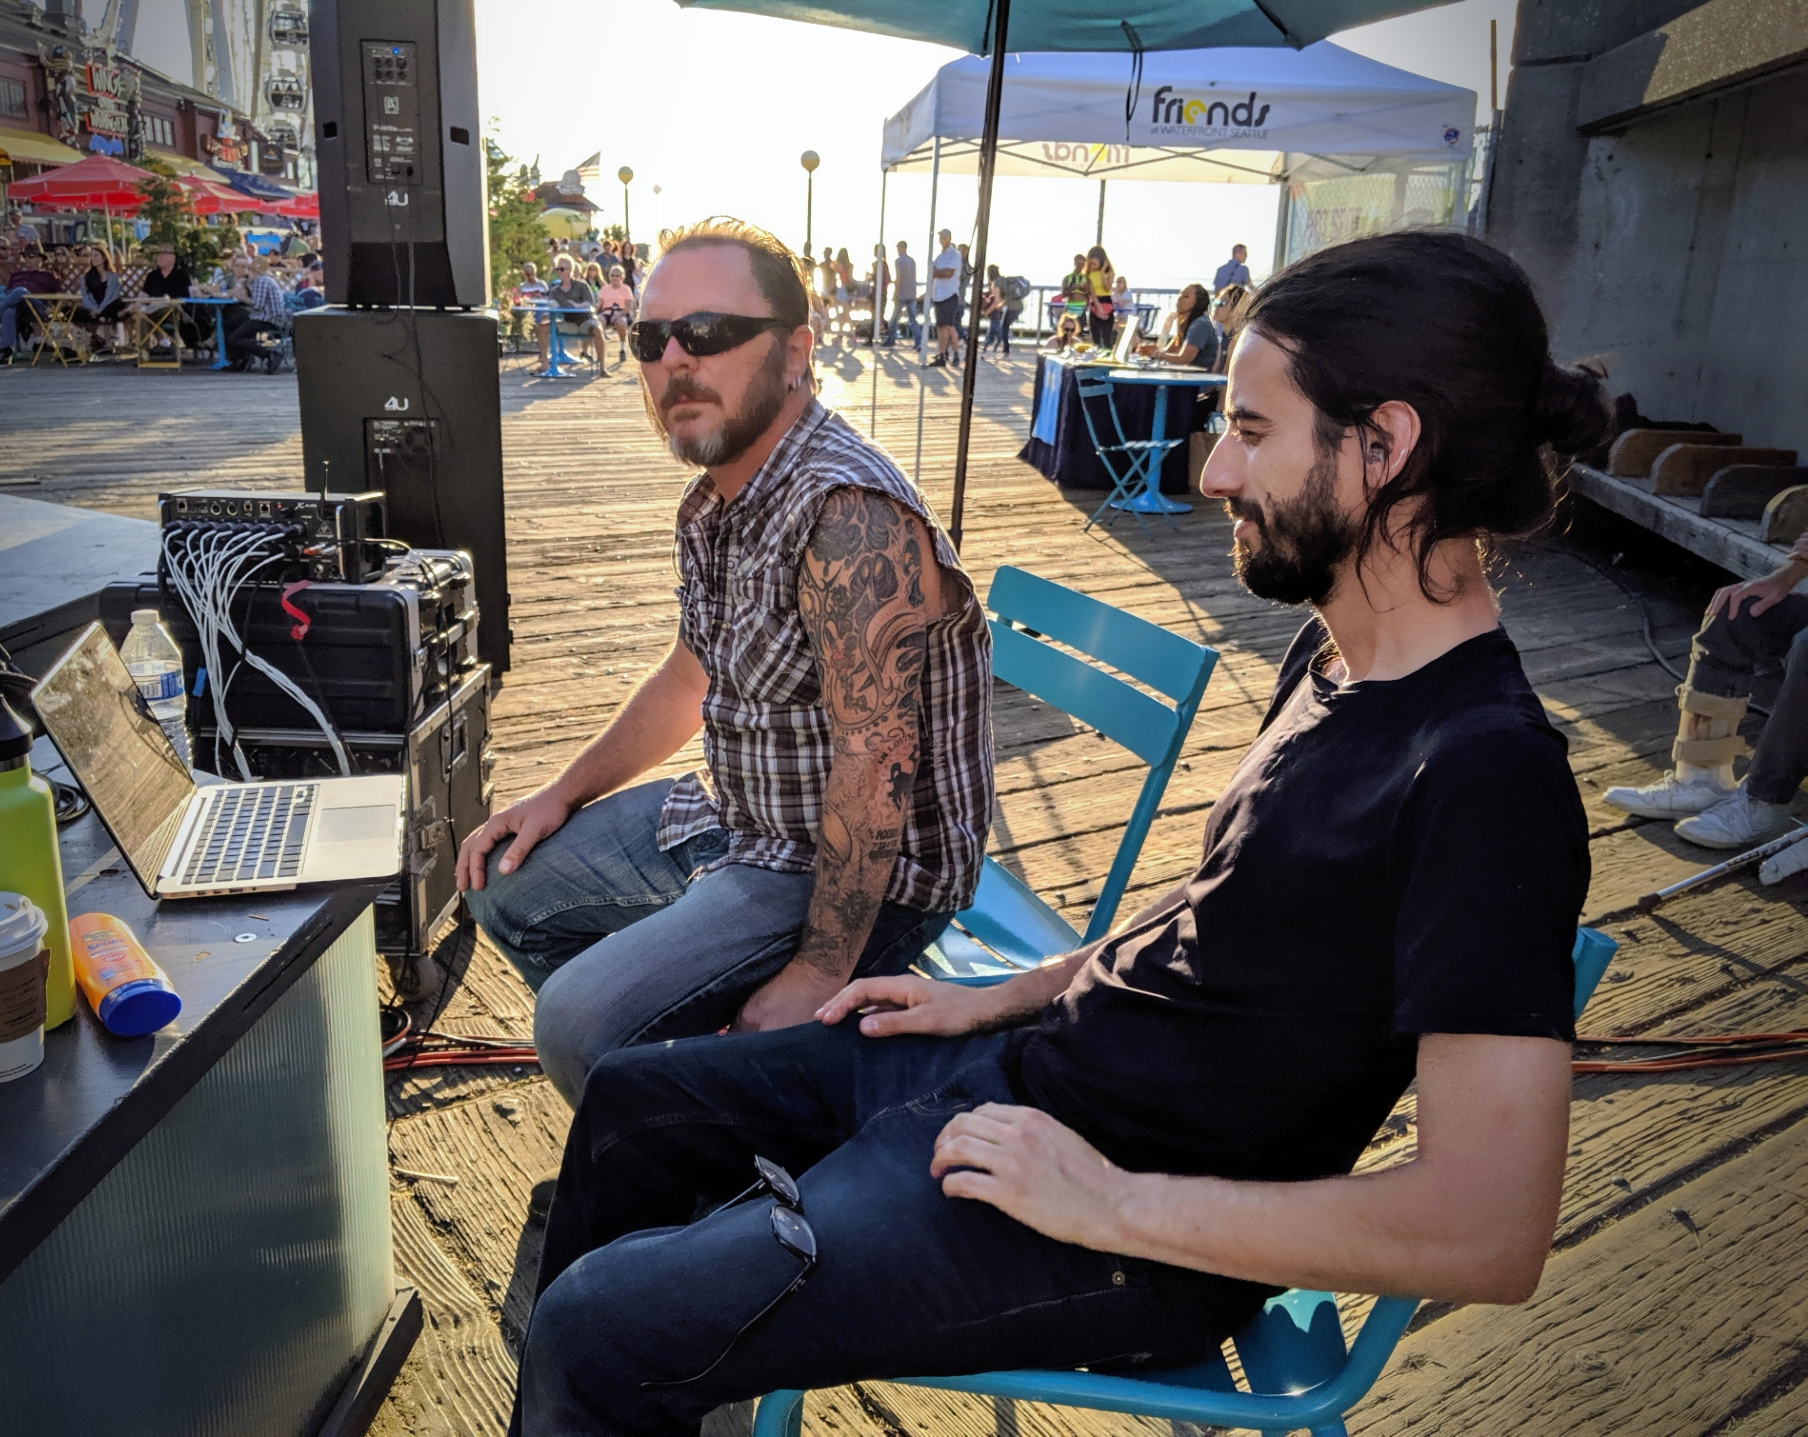 Gigs 4U (Toby Brady and Andrew Seliber) running sound.